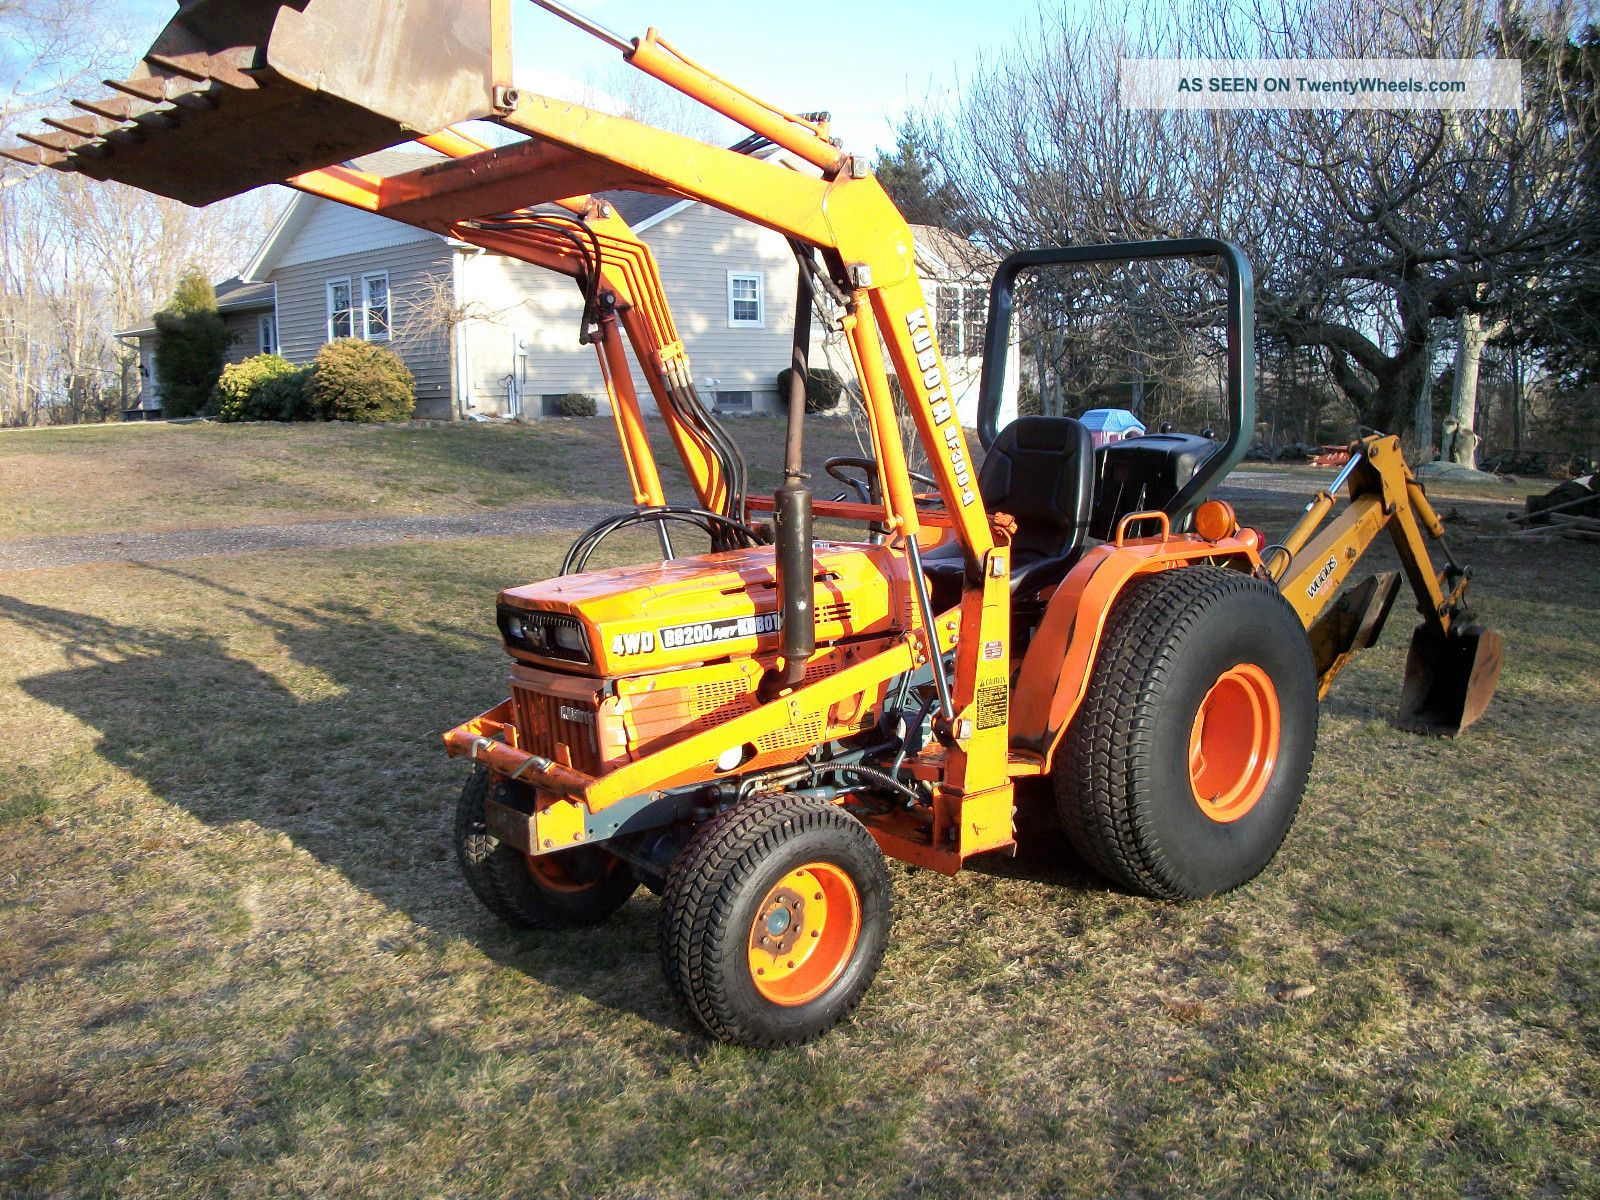 Kubota B8200 Tractor Loader Backhoe Rare Hydrostatic With